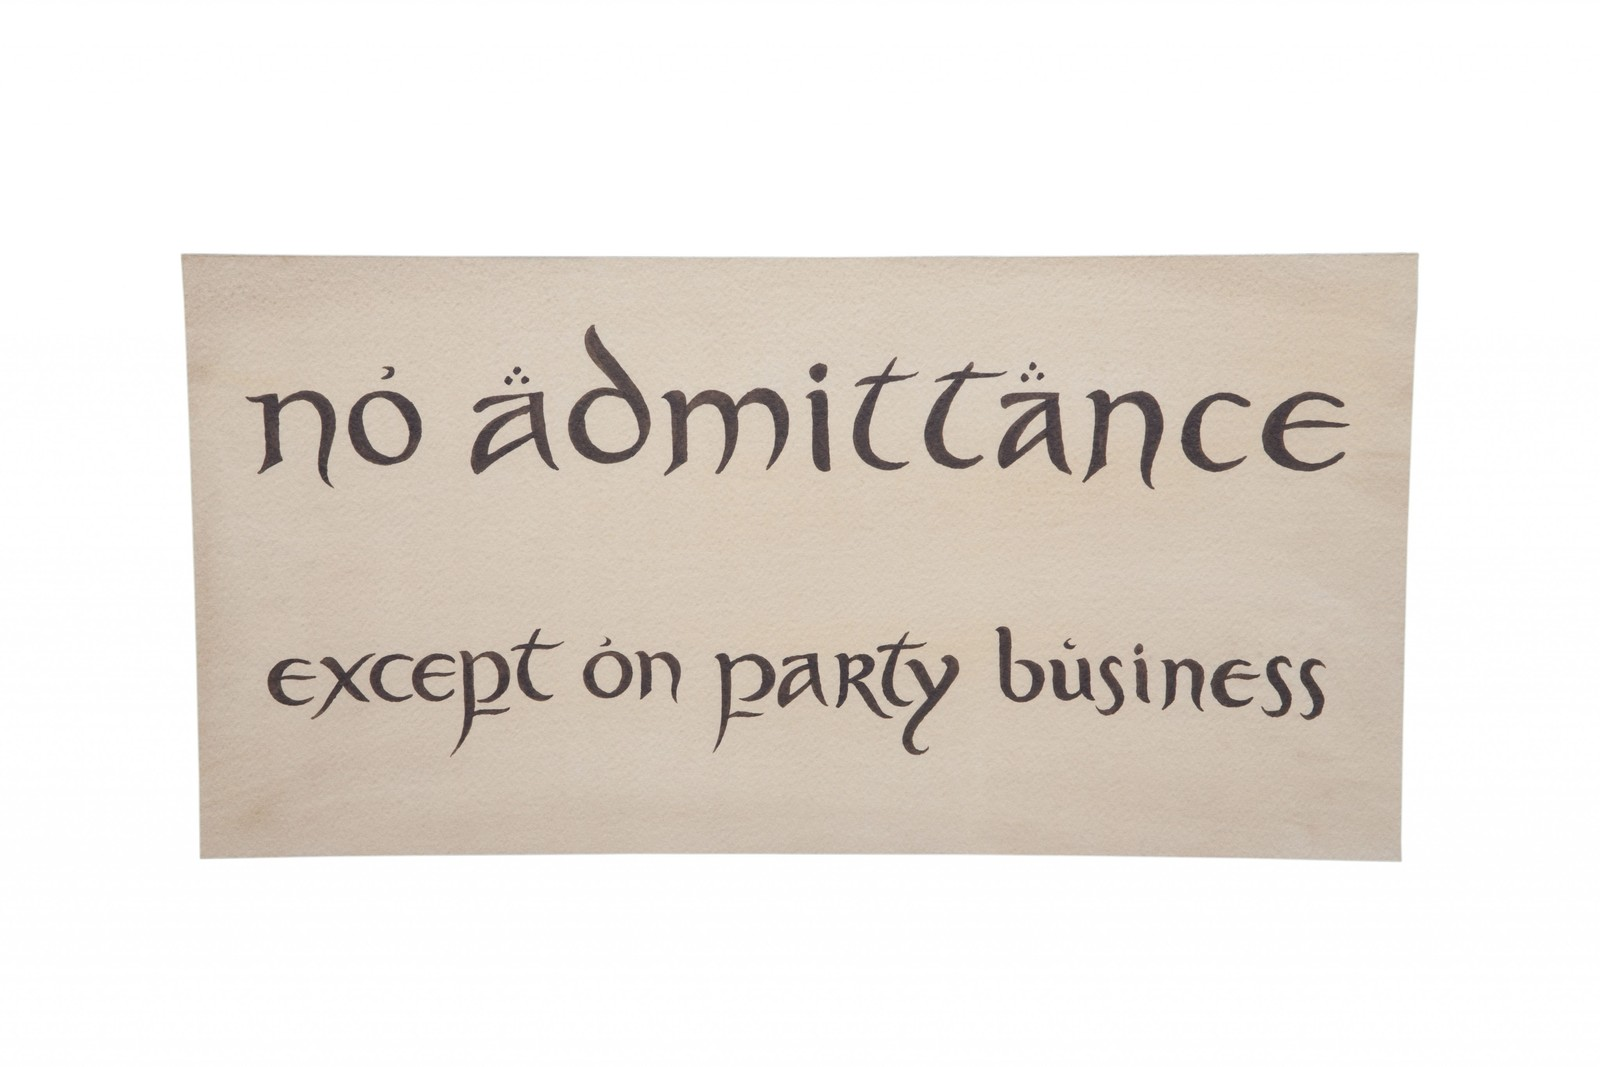 The Hobbit: An Unexpected Journey - No Admittance Sign image